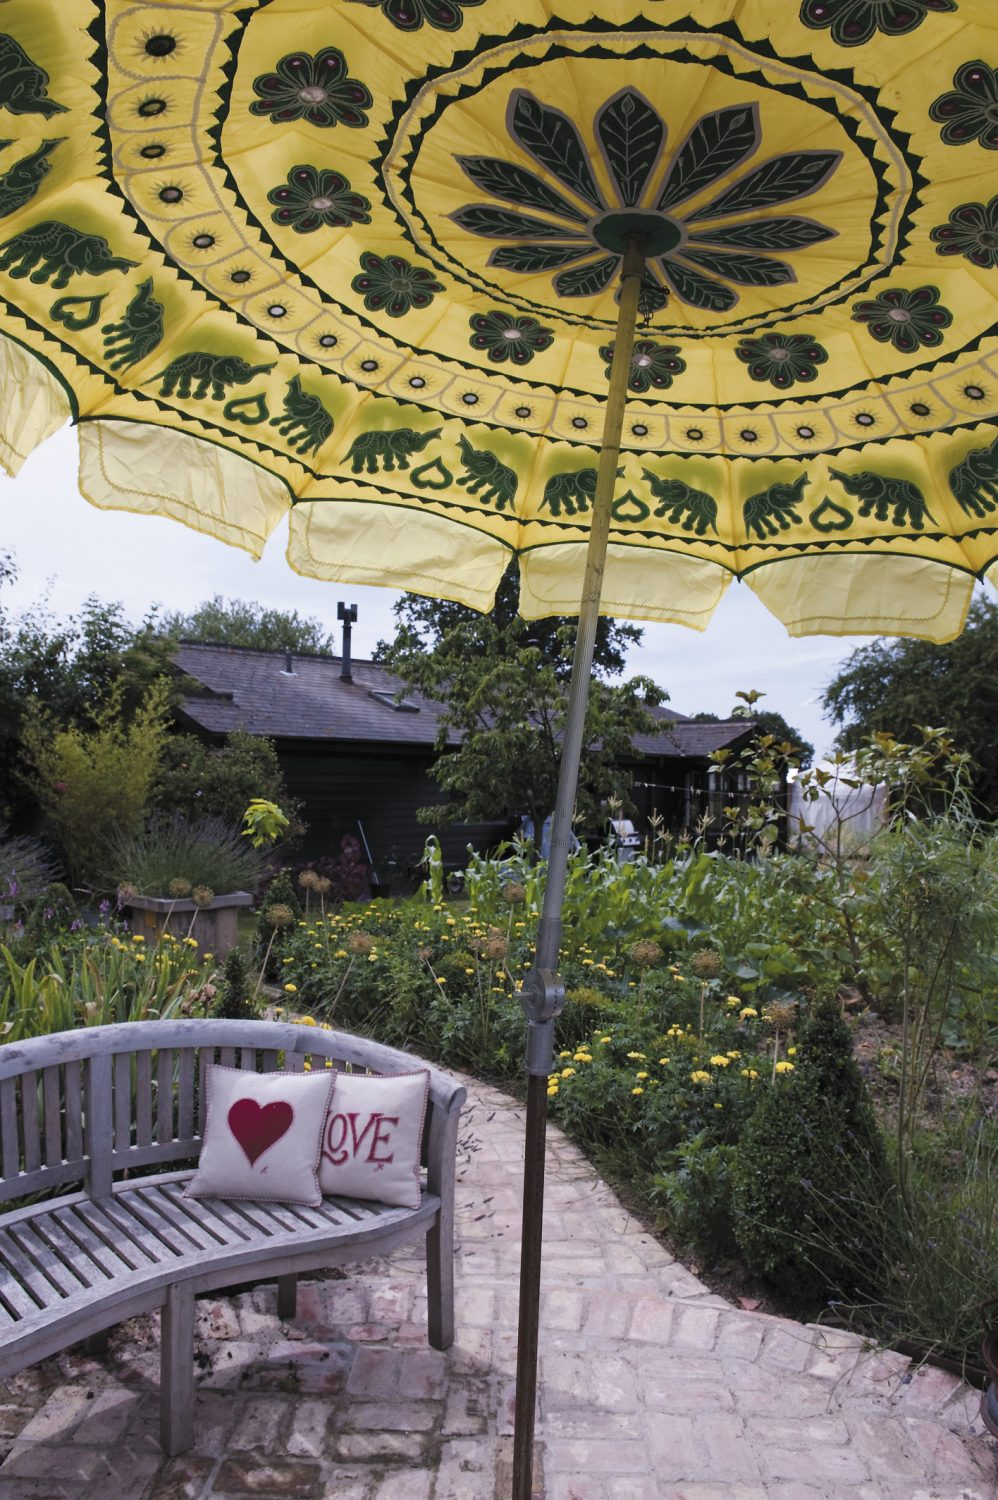 Mel and Lizzie's garden provides many peaceful places in which to relax